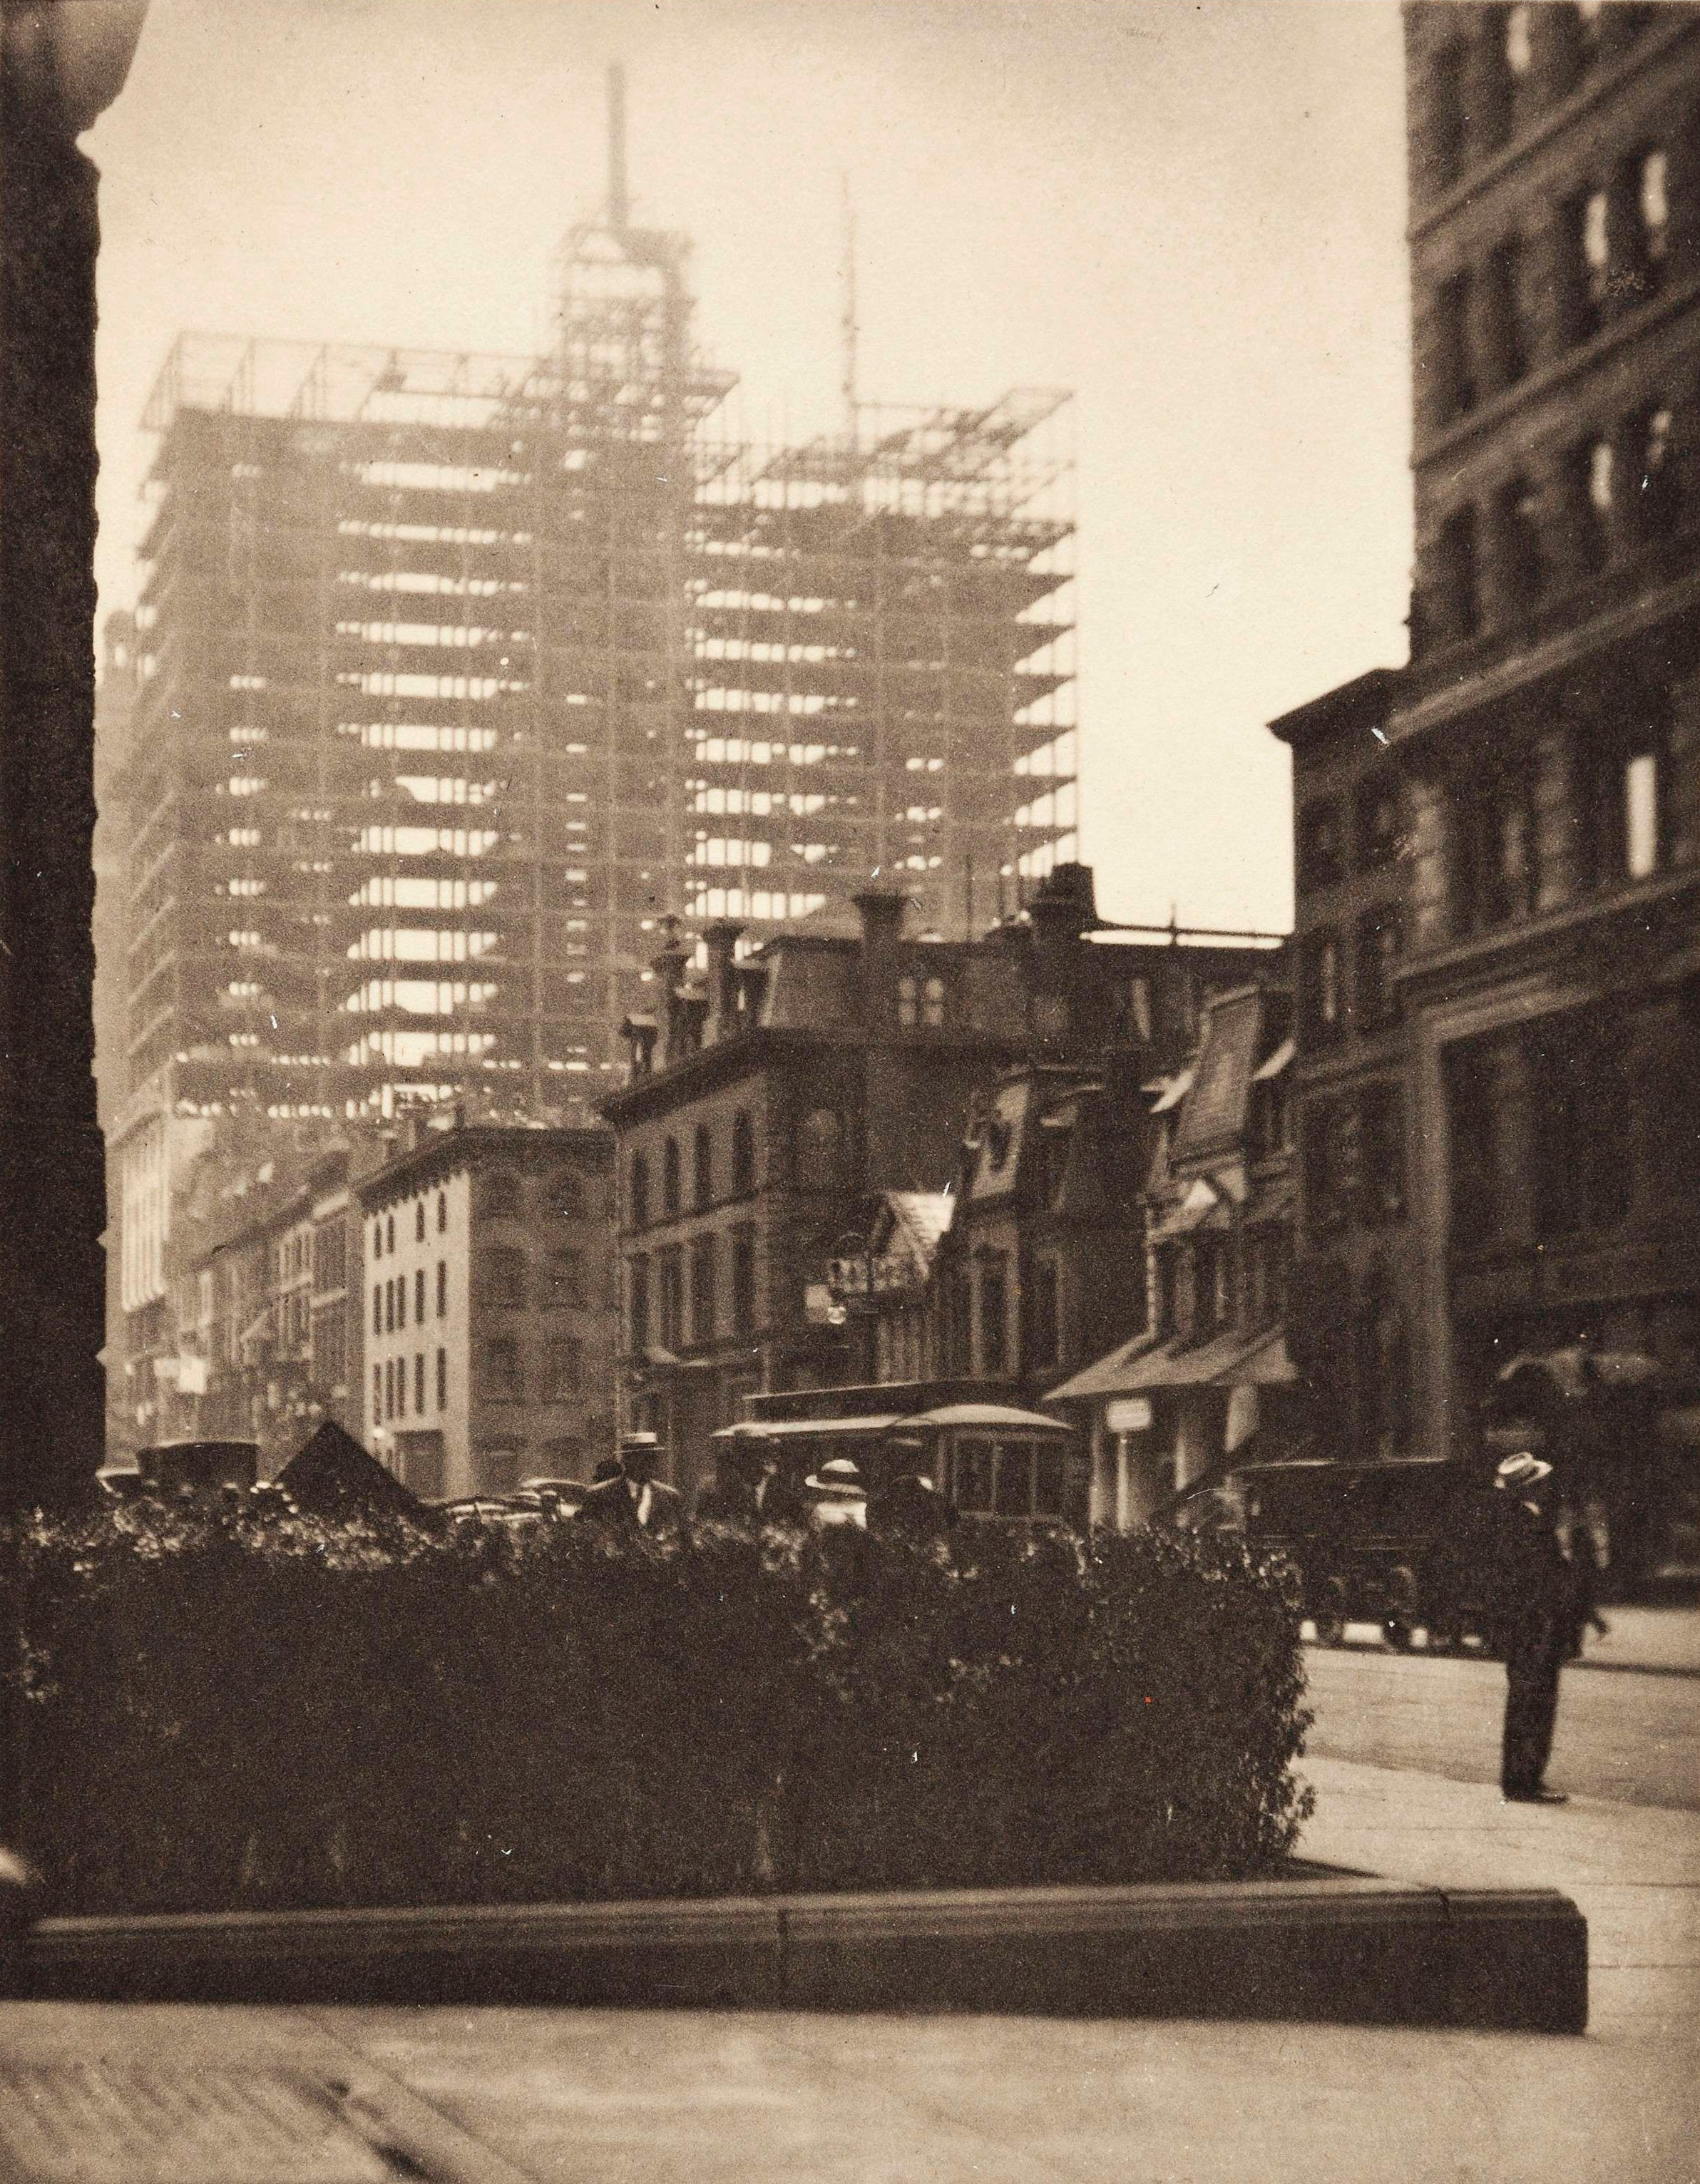 https://www.reddit.com/r/HistoryPorn/comments/4a01uc/old_and_new_new_york_by_alfred_stieglitz_1910/d0wkkjy